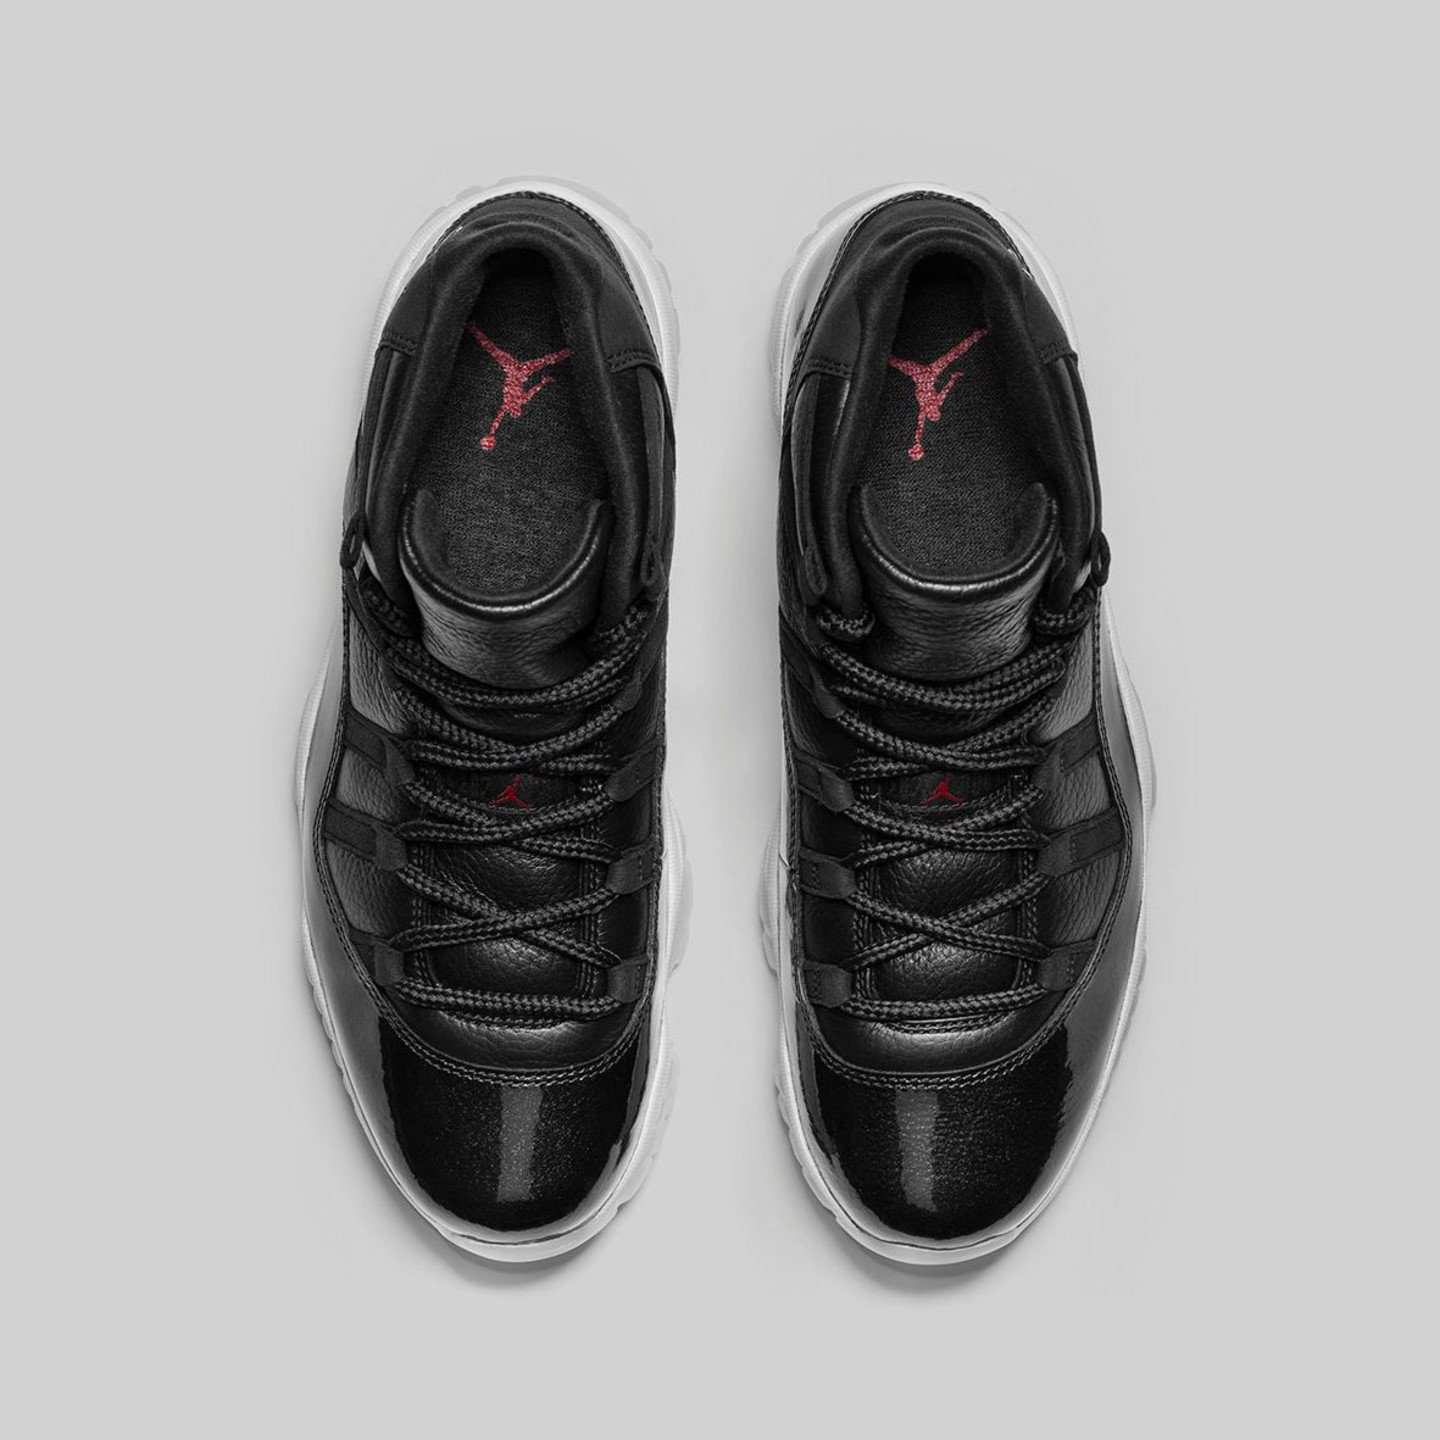 Jordan Air Jordan 11 Retro ´72-10´ Black / Gym Red / White / Anthracite 378037-002-47